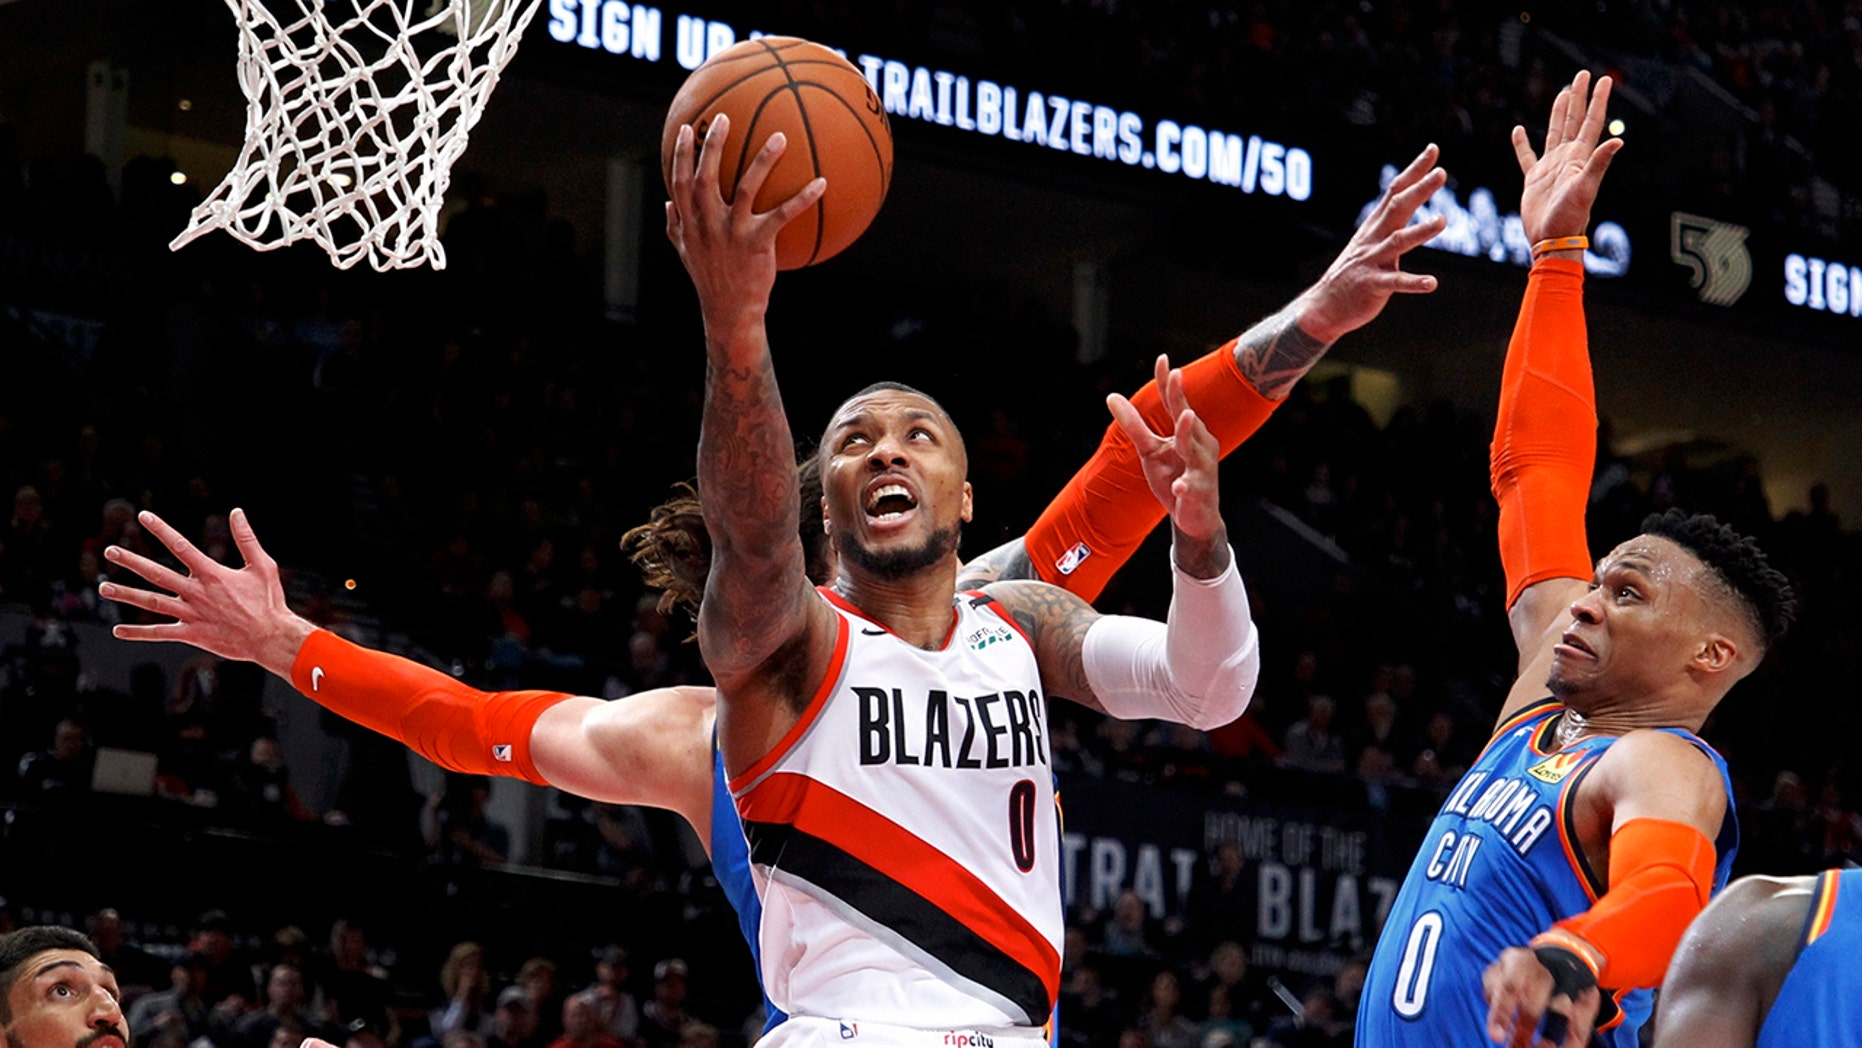 Portland Trail Blazers ensure Damian Lillard, center, shoots as Oklahoma City Thunder ensure Russell Westbrook, right, defends during a second half of Game 1 of a first-round NBA basketball playoff array in Portland, Ore., Sunday, Apr 14, 2019. (AP Photo/Steve Dipaola)